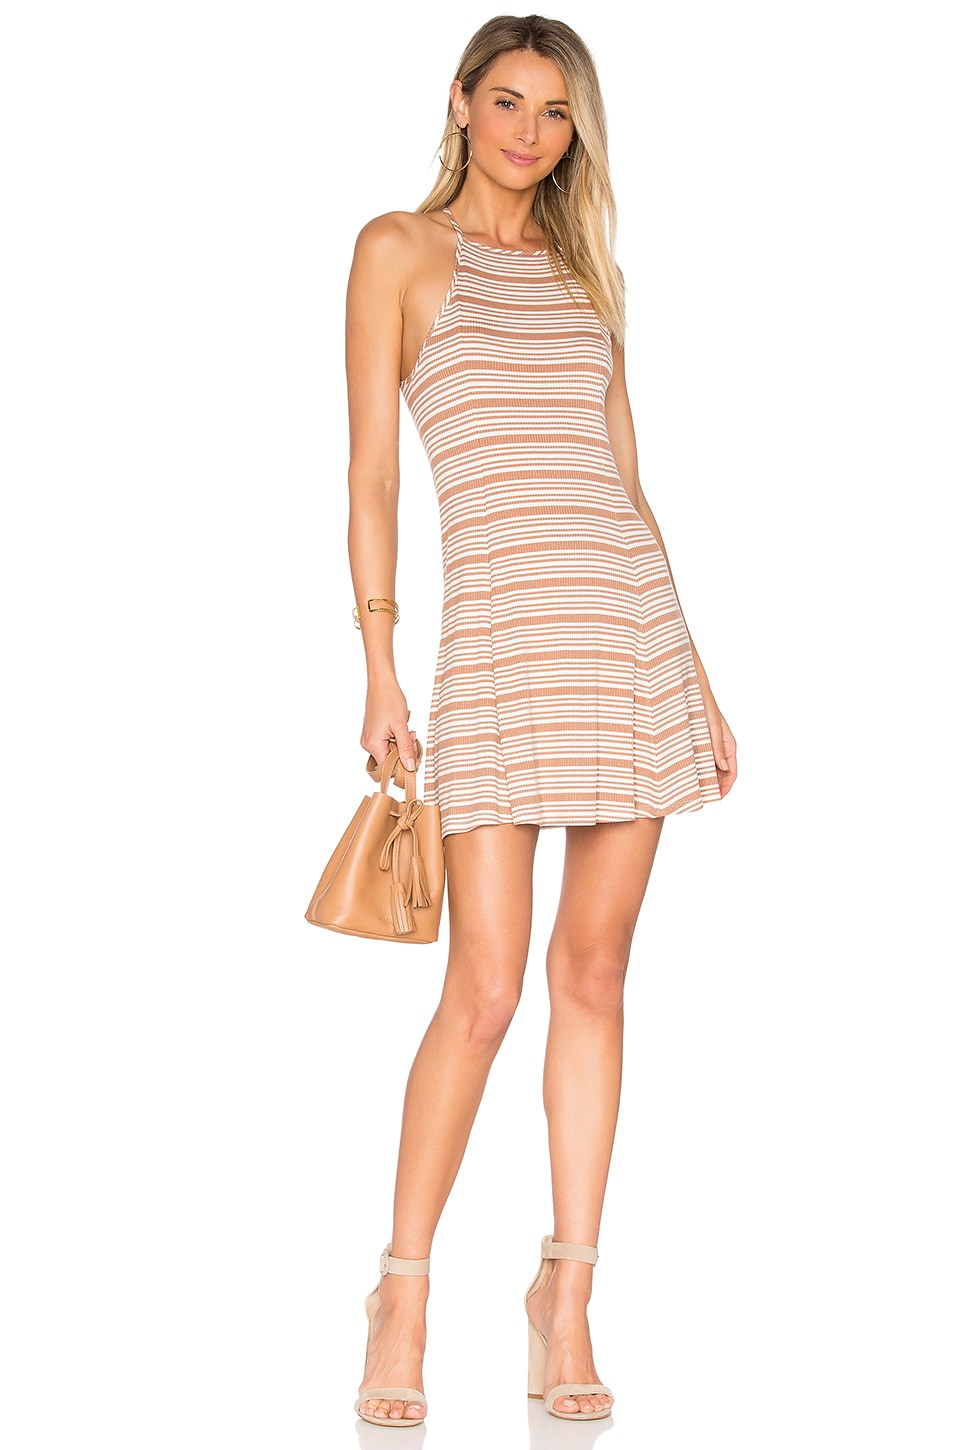 Privacy Please Holly Dress in Camel